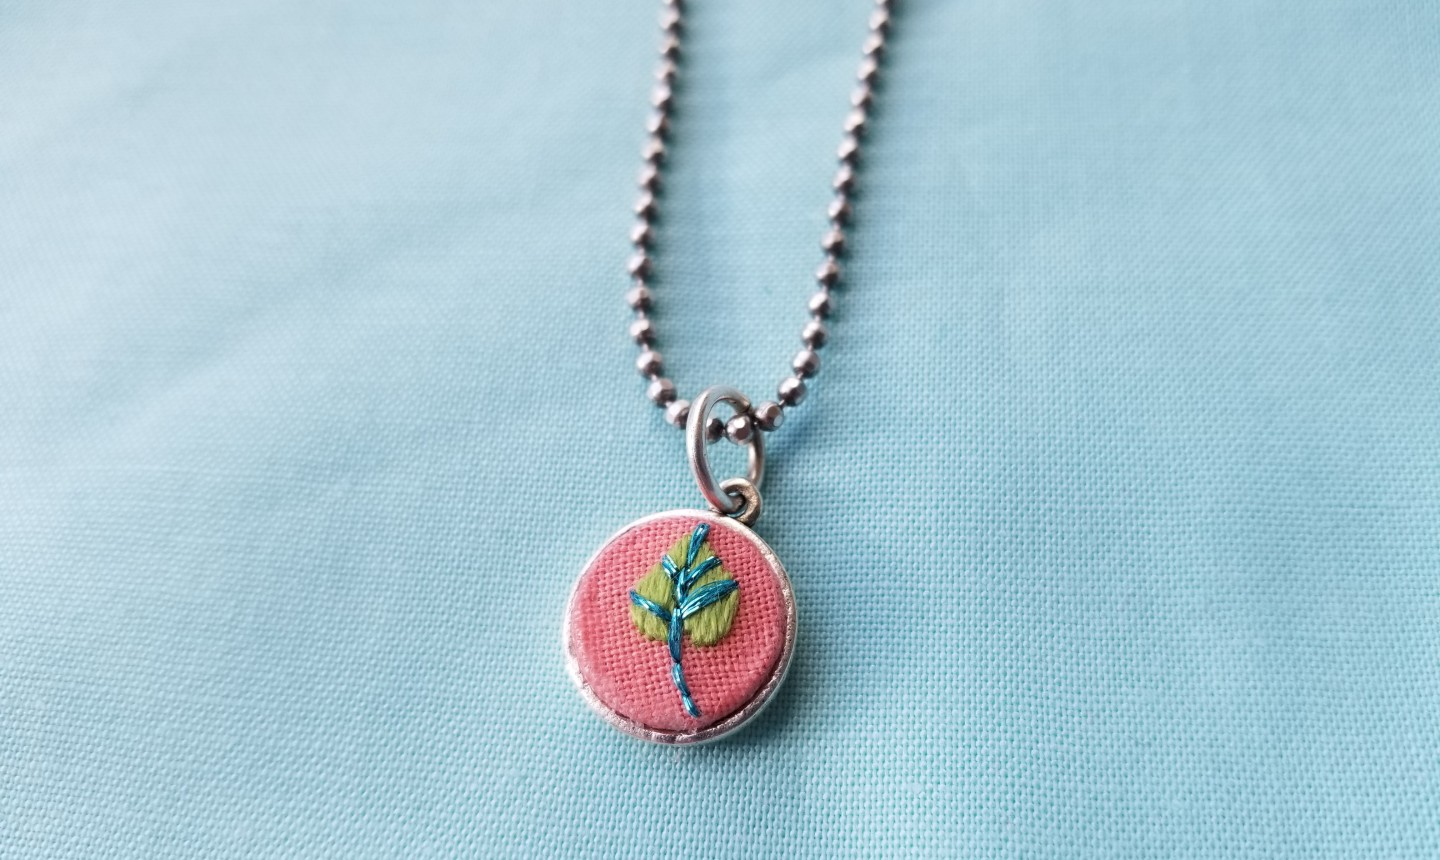 embroidered pendant close up